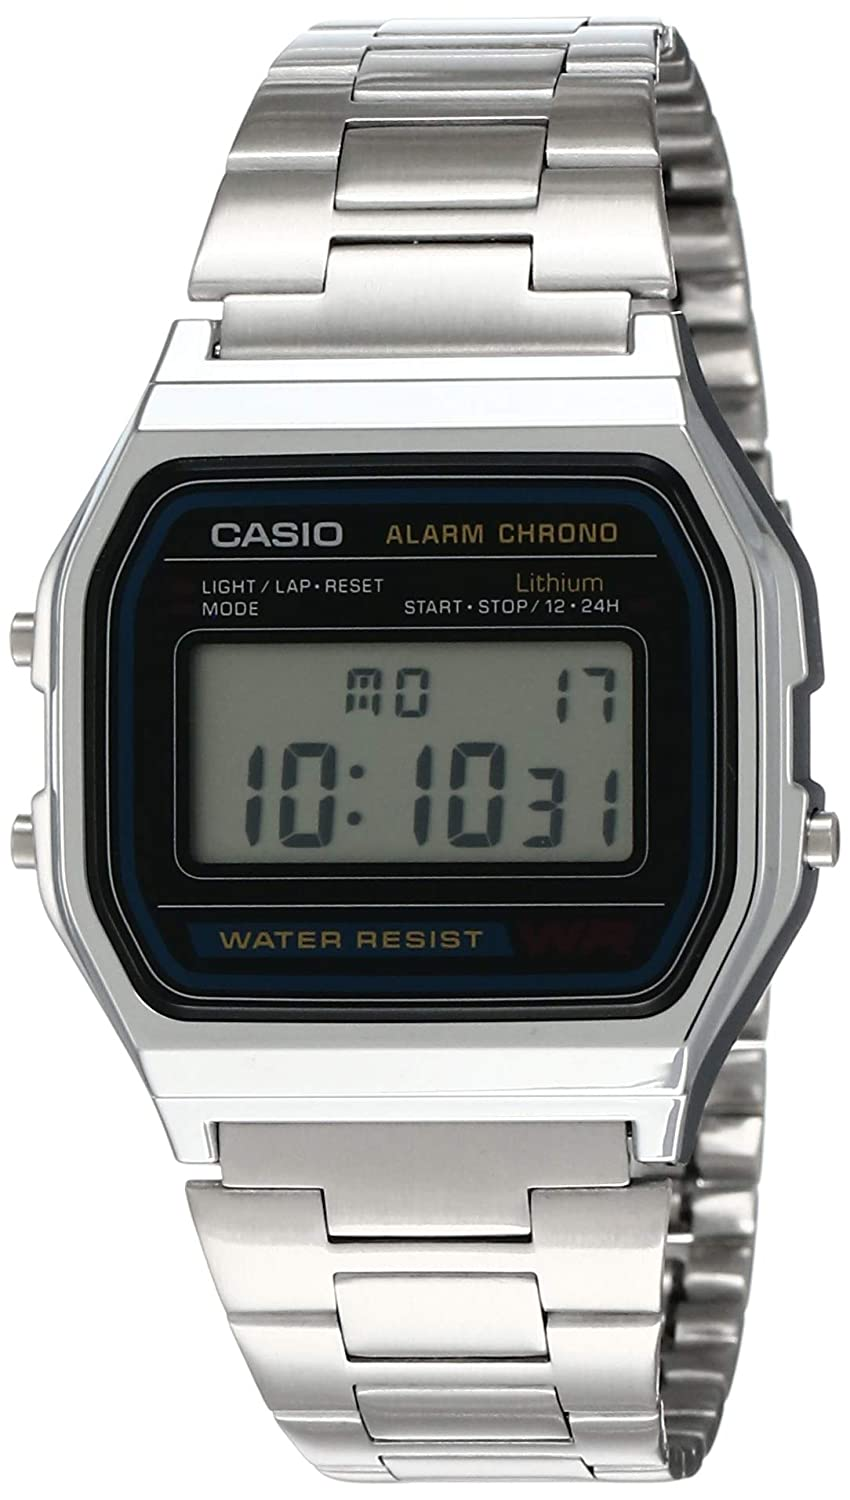 15 Best Digital Watches for Men in India - The Ultimate Buying Guide 2020